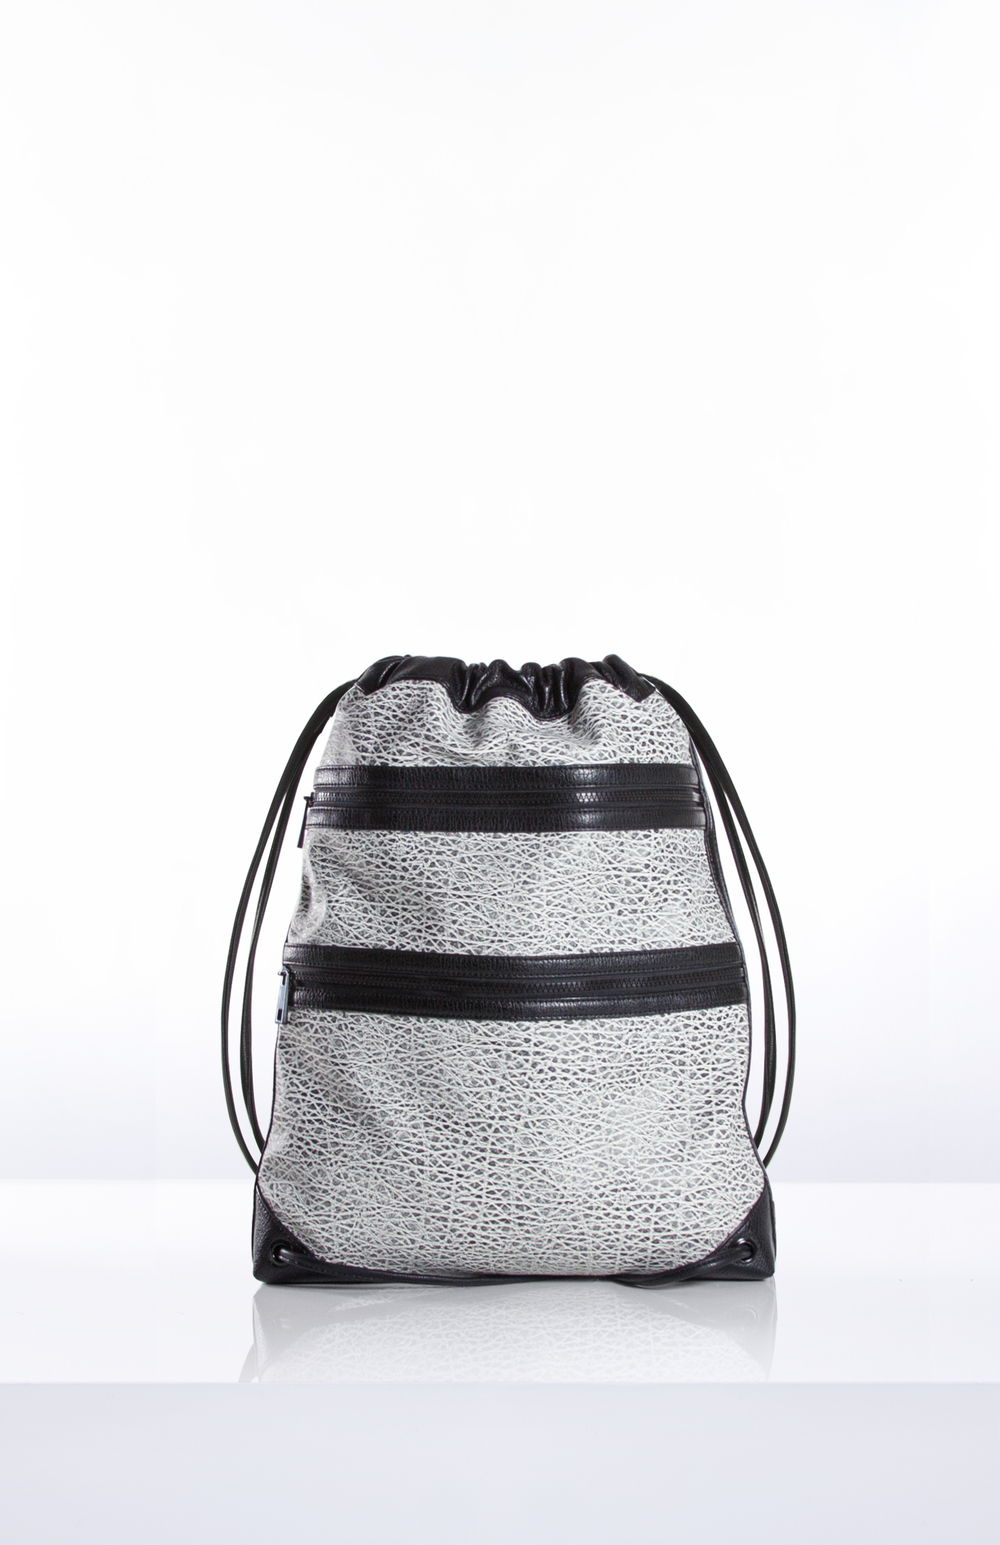 Odessa Drawstring Gym Bag- Heavy Marbled PU + Nylon Mesh Blocking